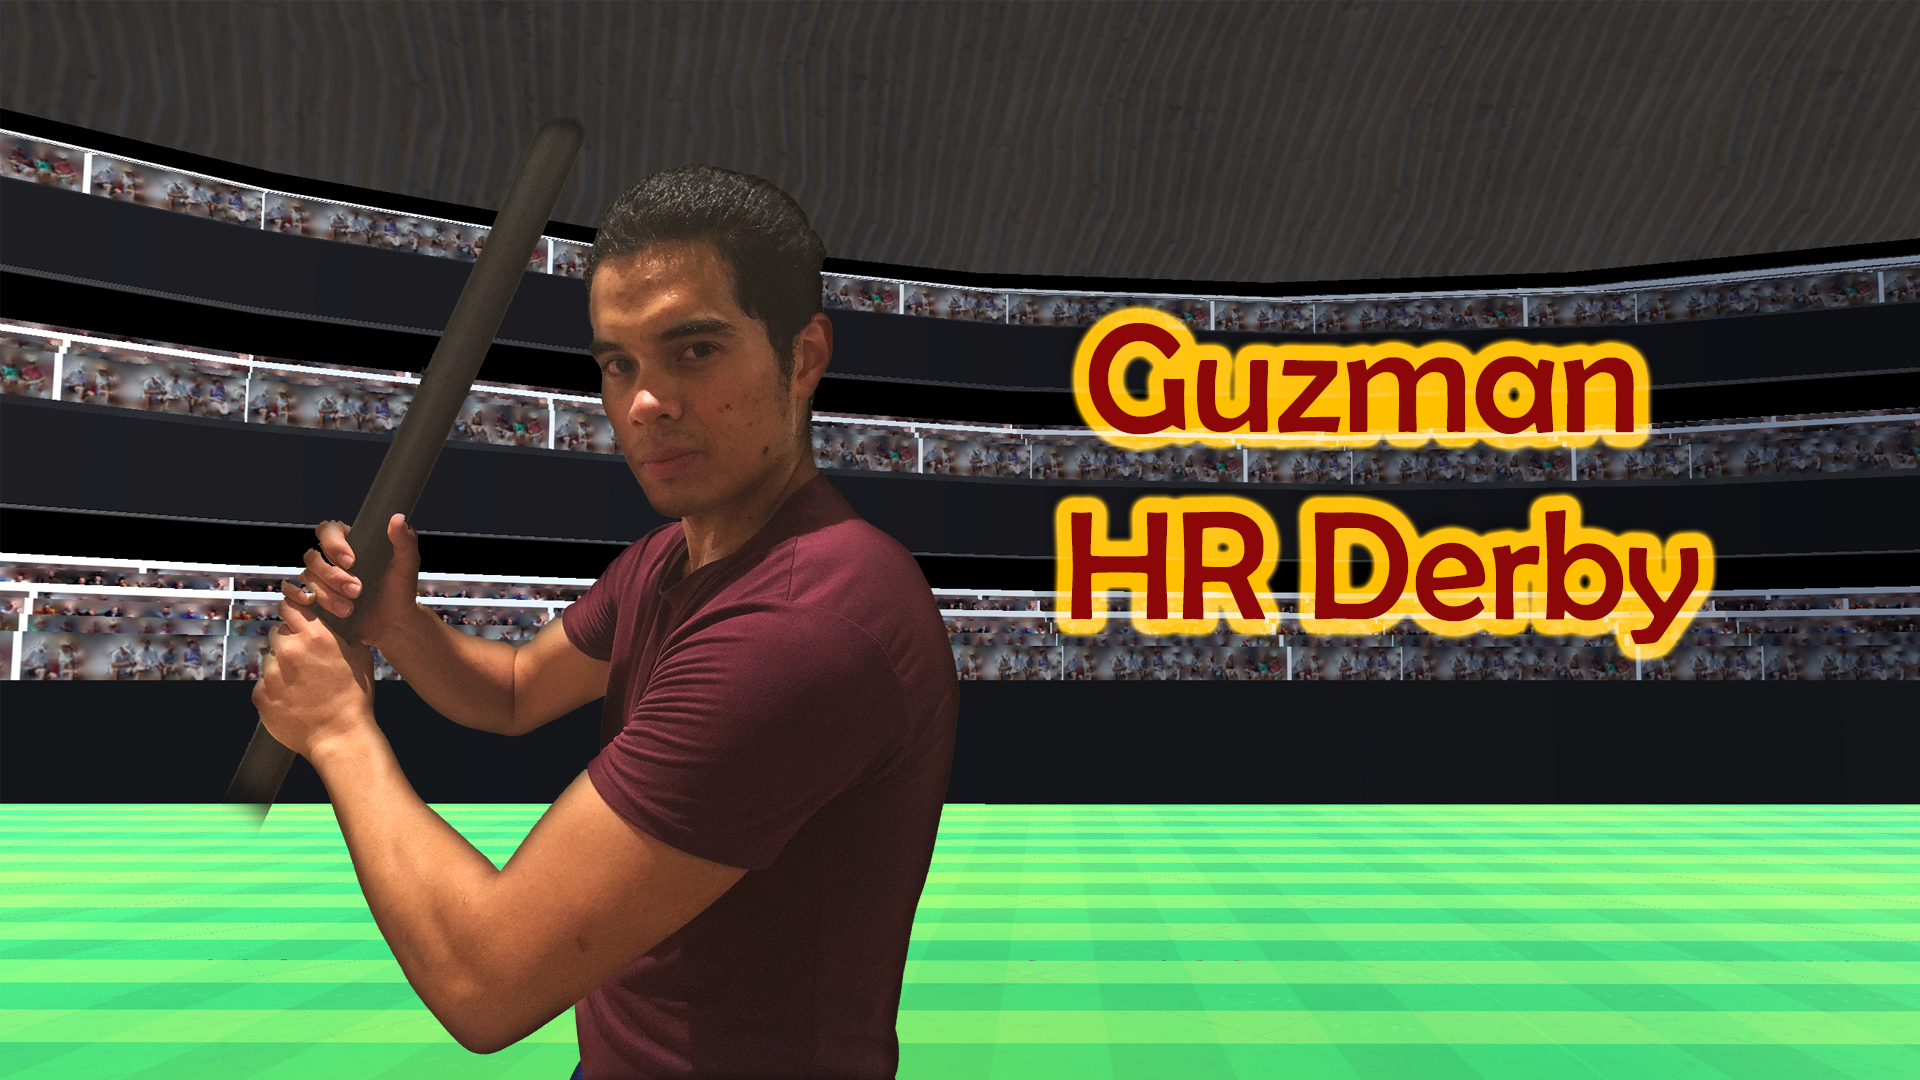 Guzman Home Run Derby